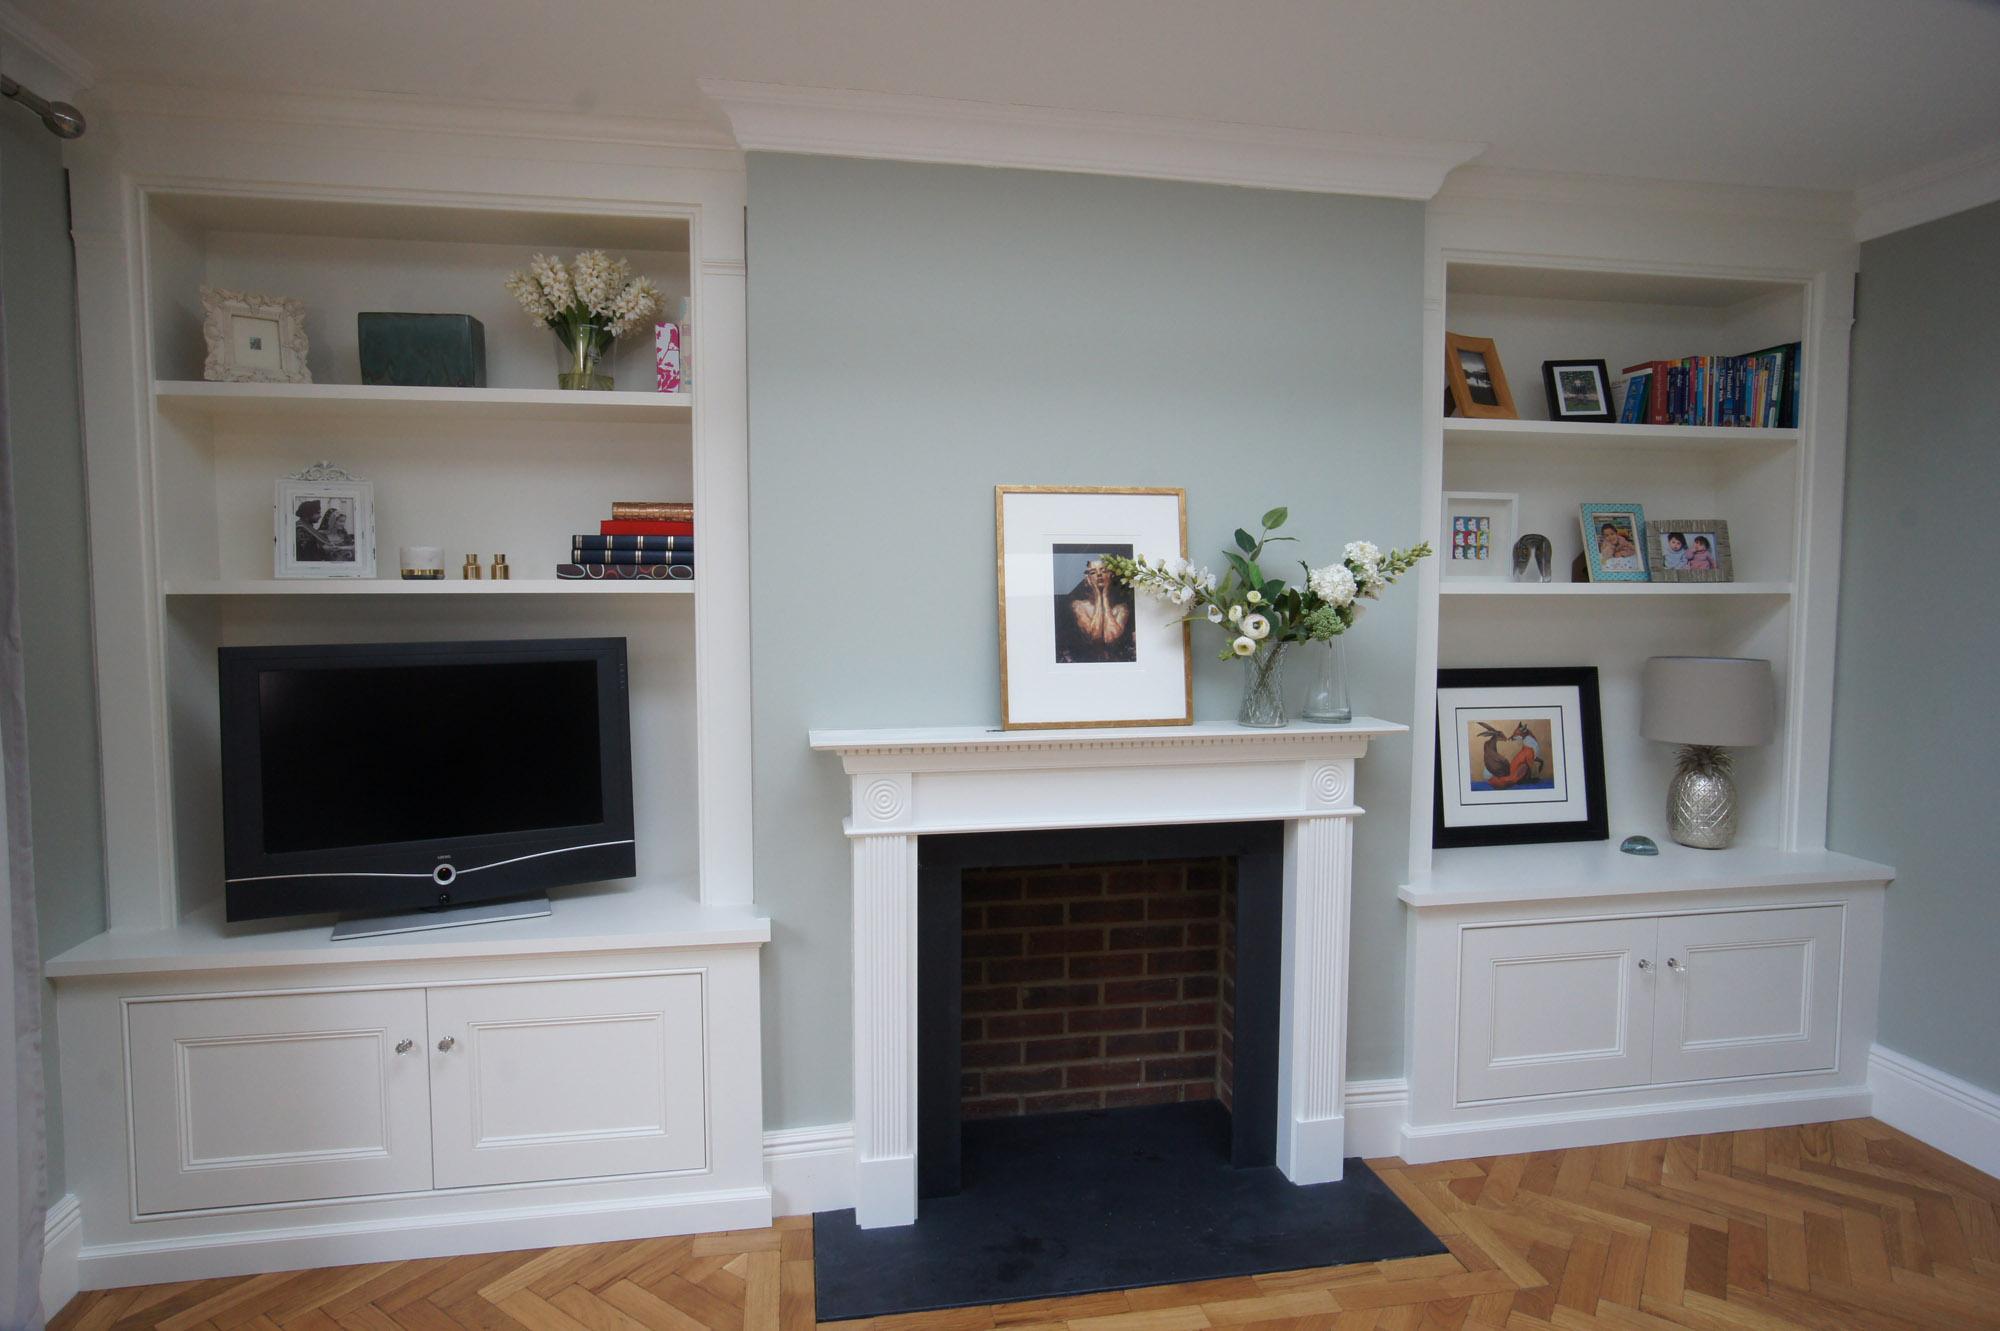 GW-Cabinetry-Interior-Solutions-Alcoves-11.jpg